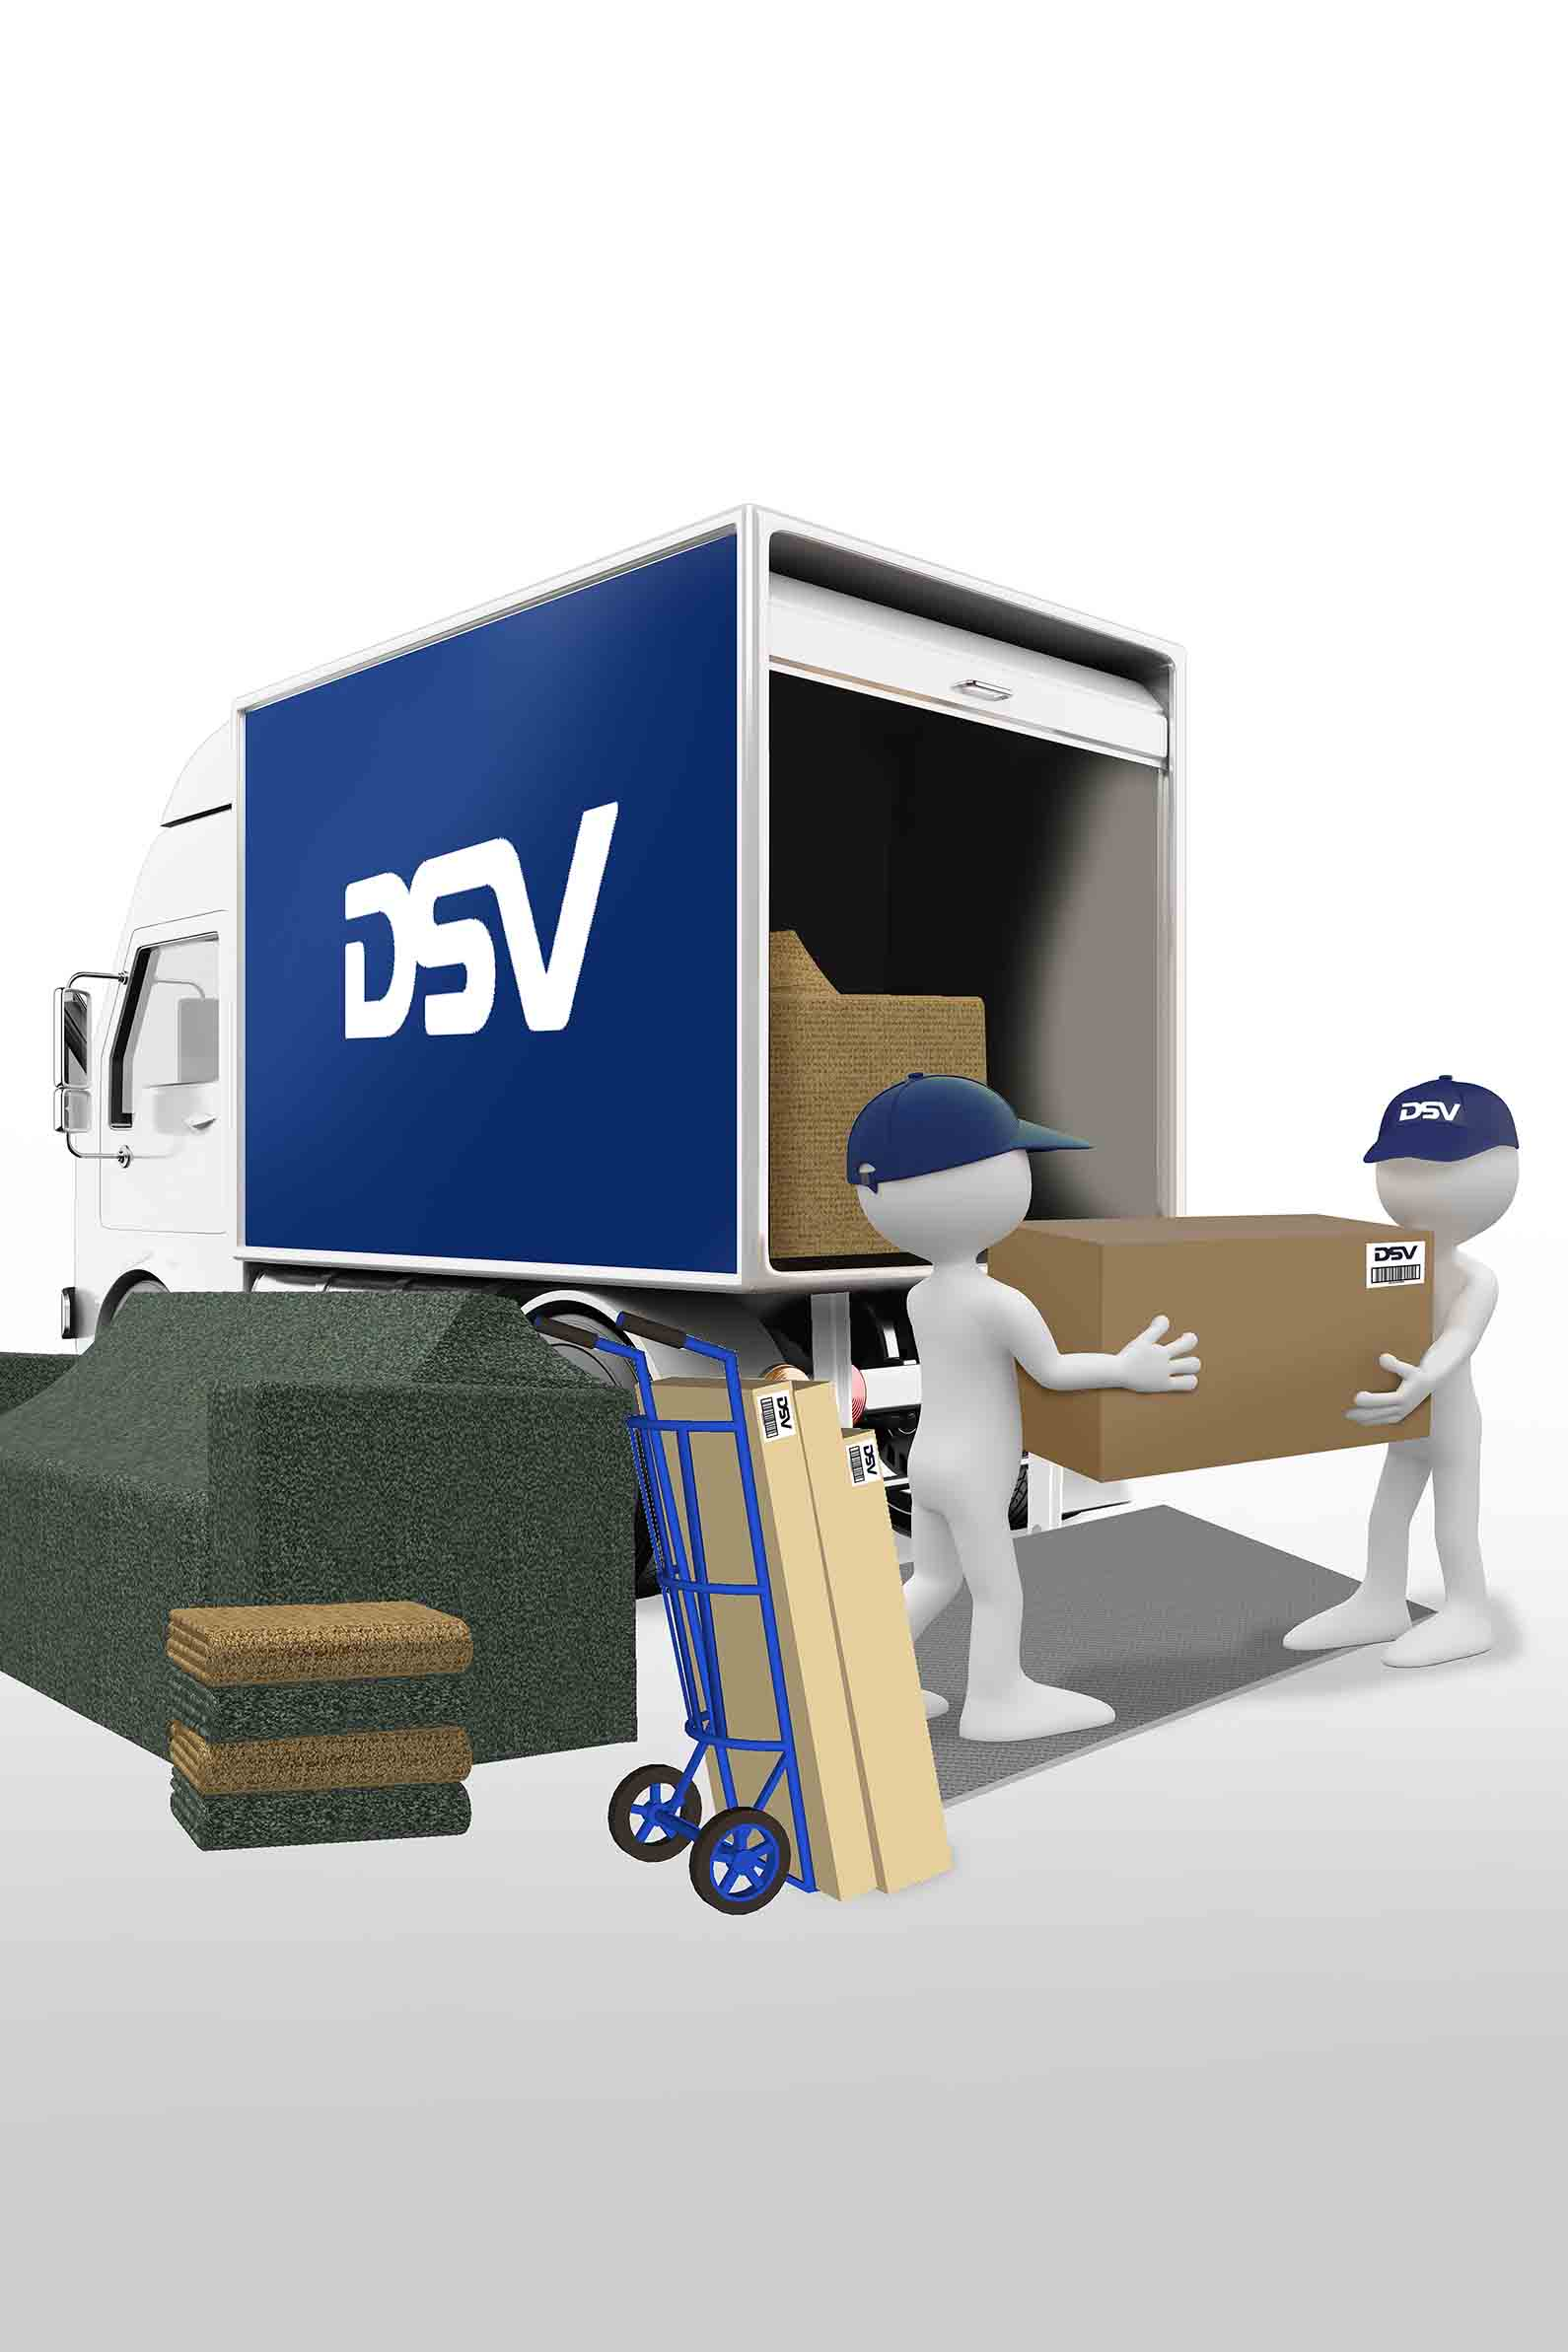 Dsv solutions home delivery services furniture news magazine for Furniture news